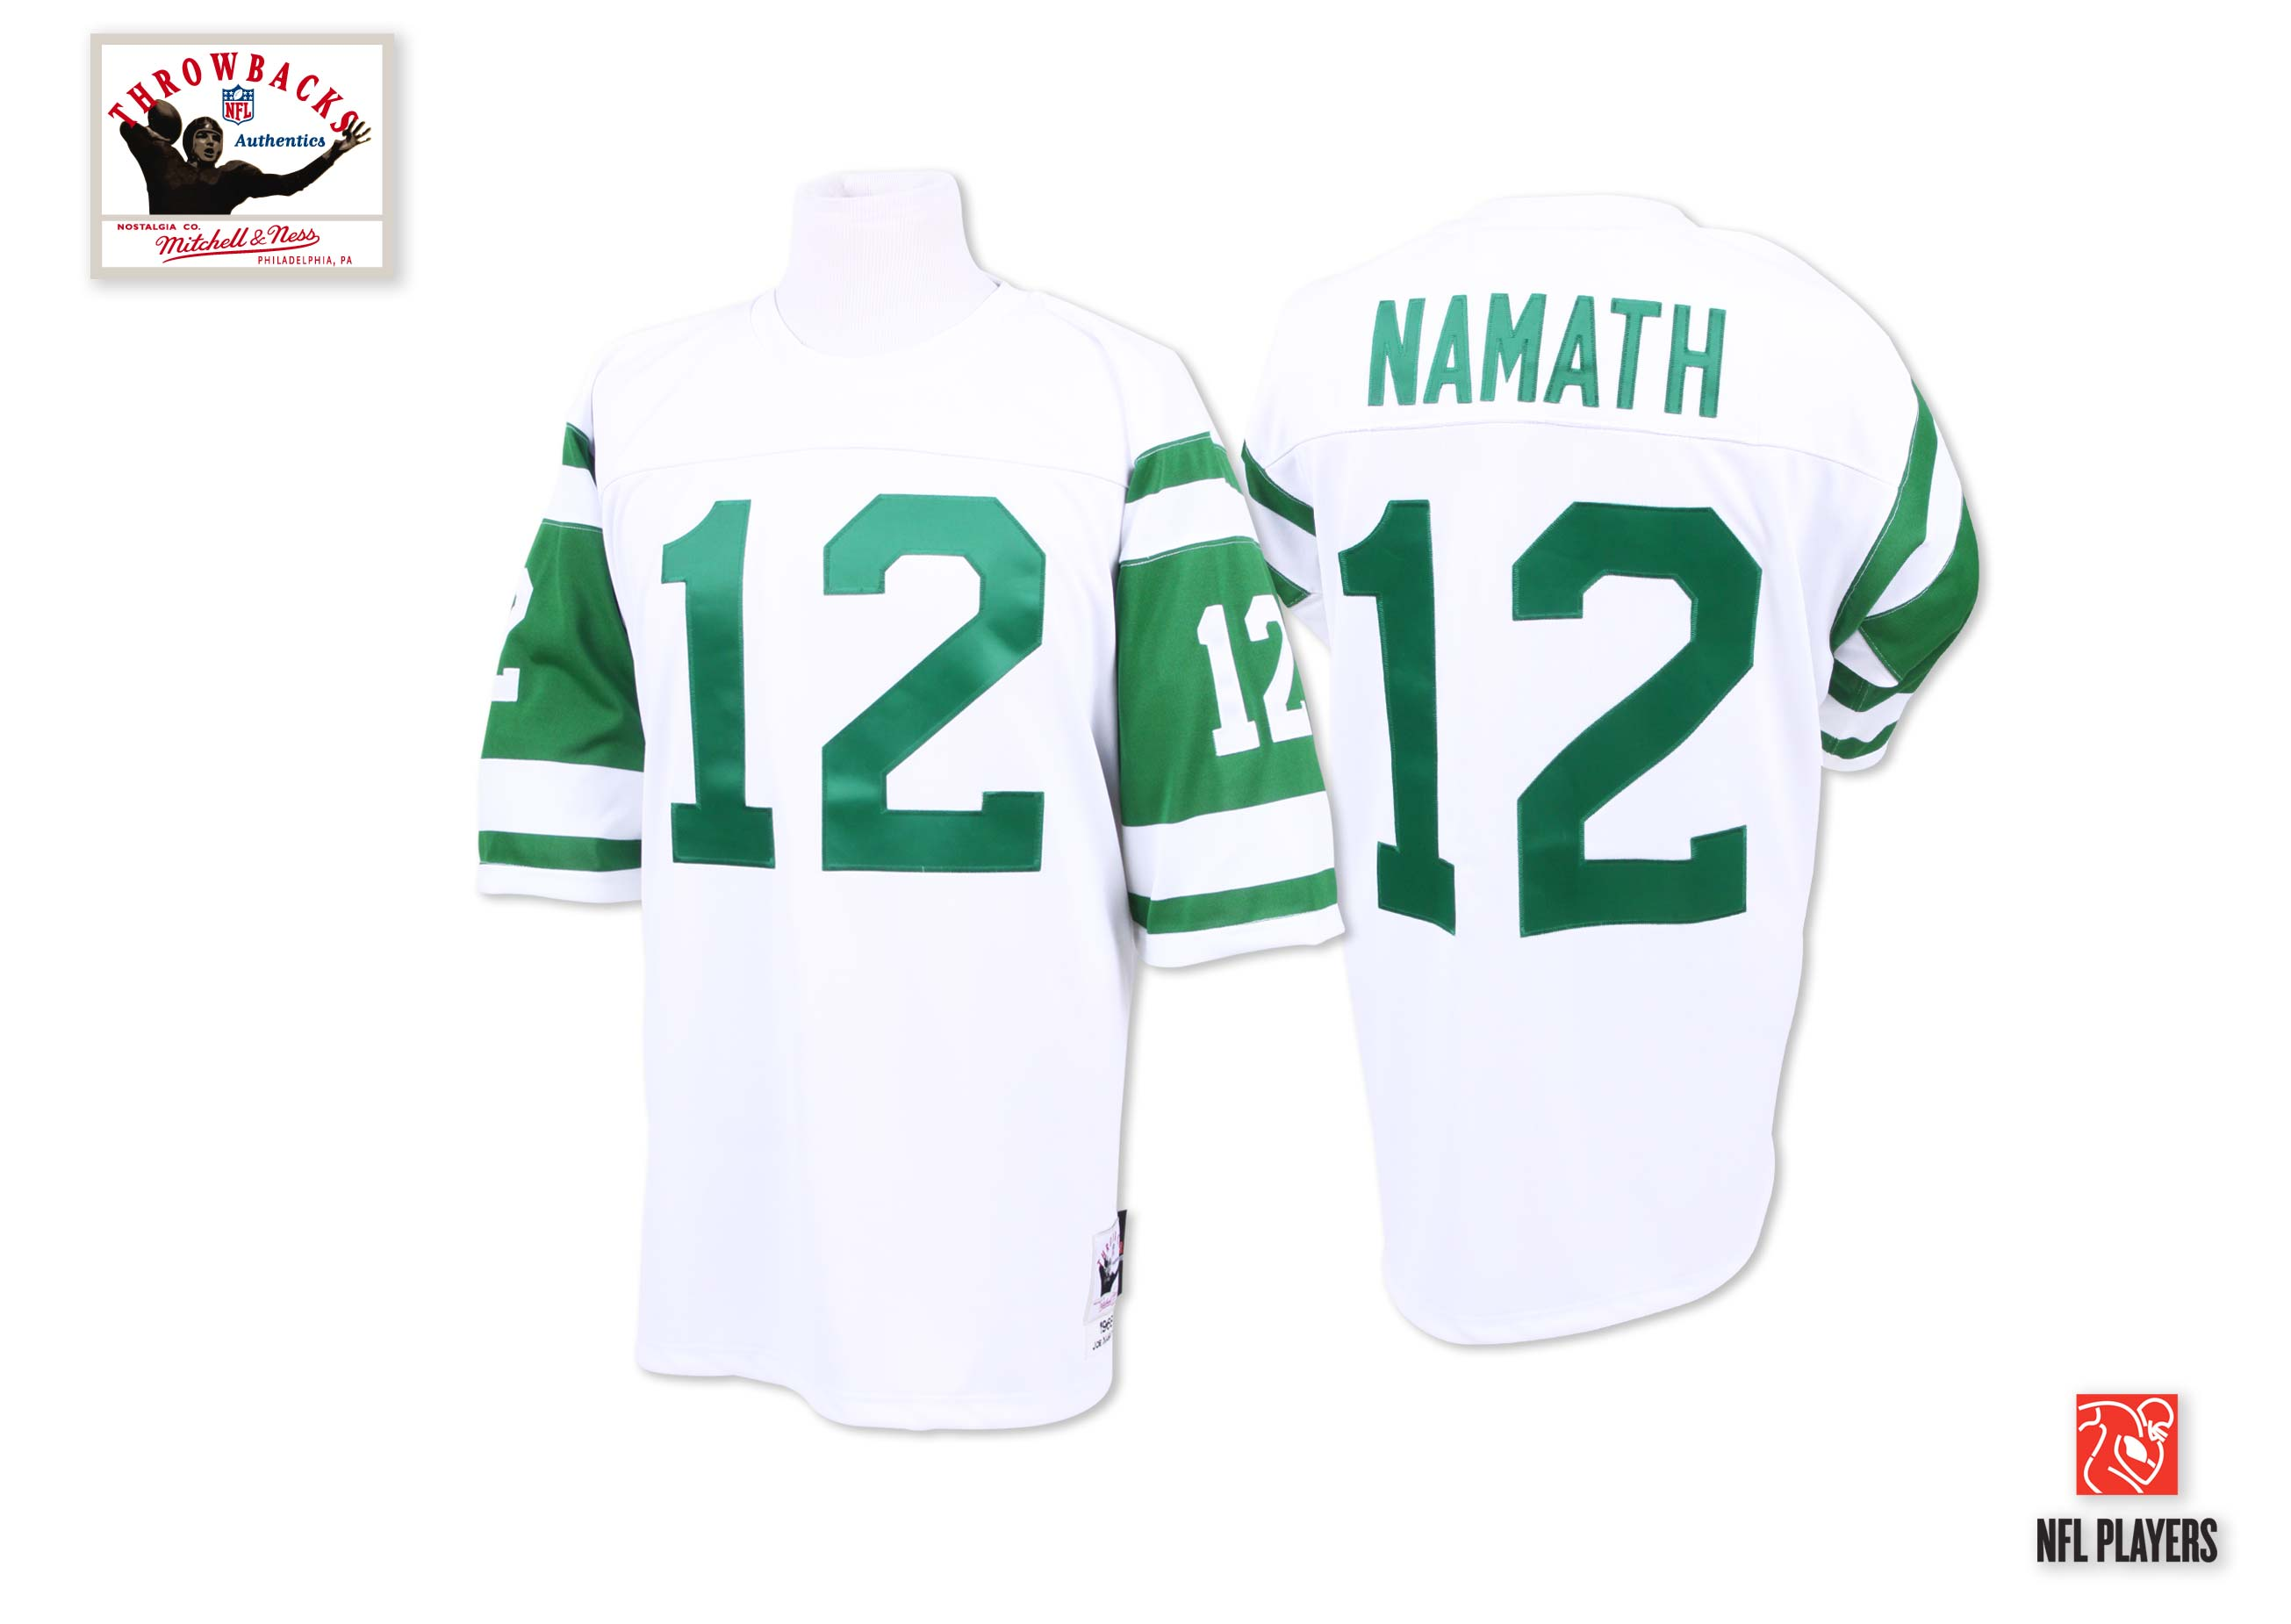 Slugfest Lightweight Hoody Indiana Pacers Mitchell Ness Nostalgia Co Jersey Nama Joe Namath 1968 Authentic New York Jets